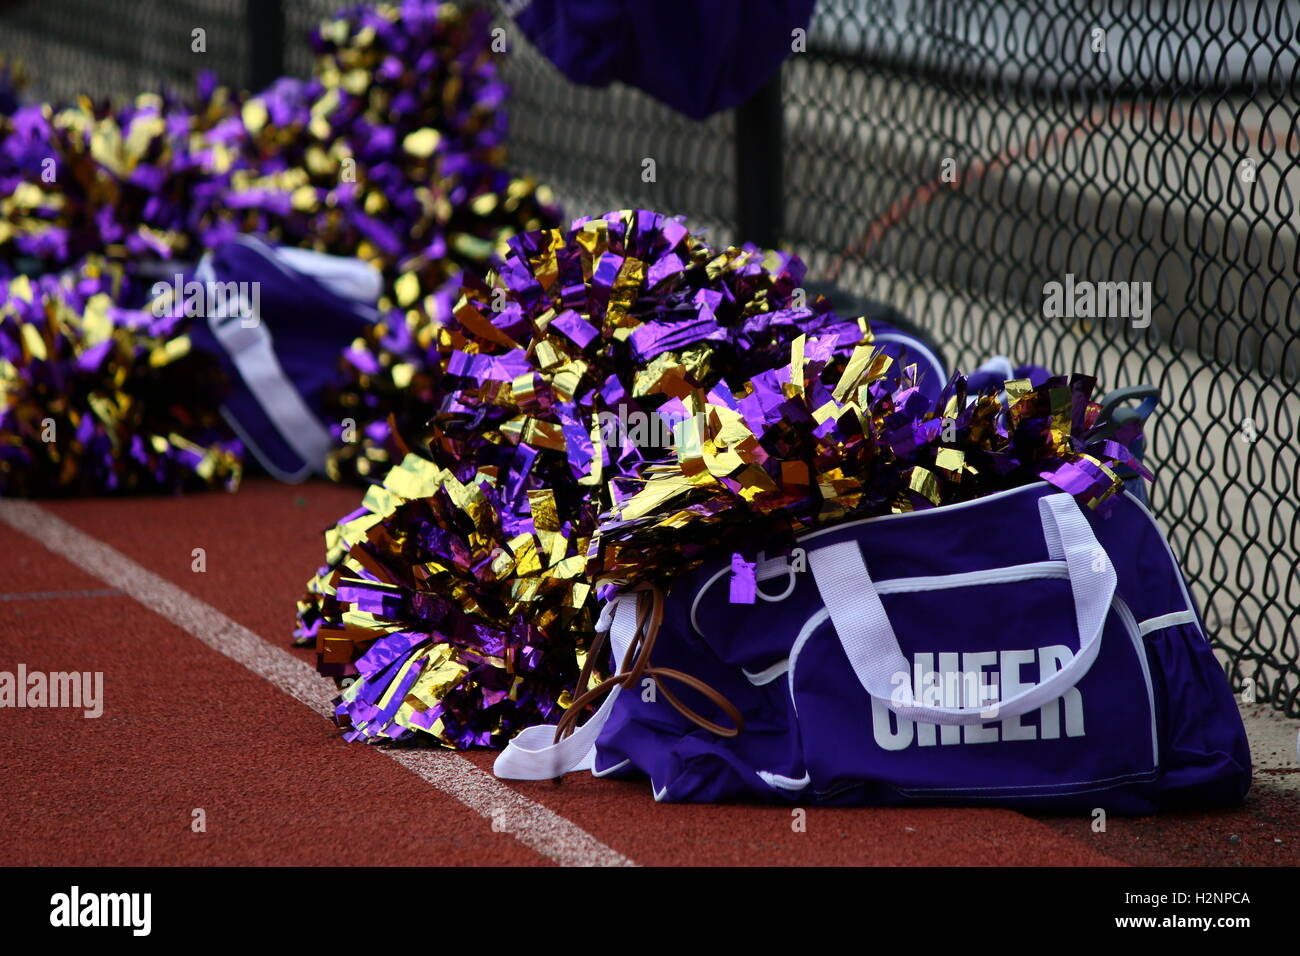 Cheerleader Bags And Pom Poms By Fenceline On Tennis Court Stock Image